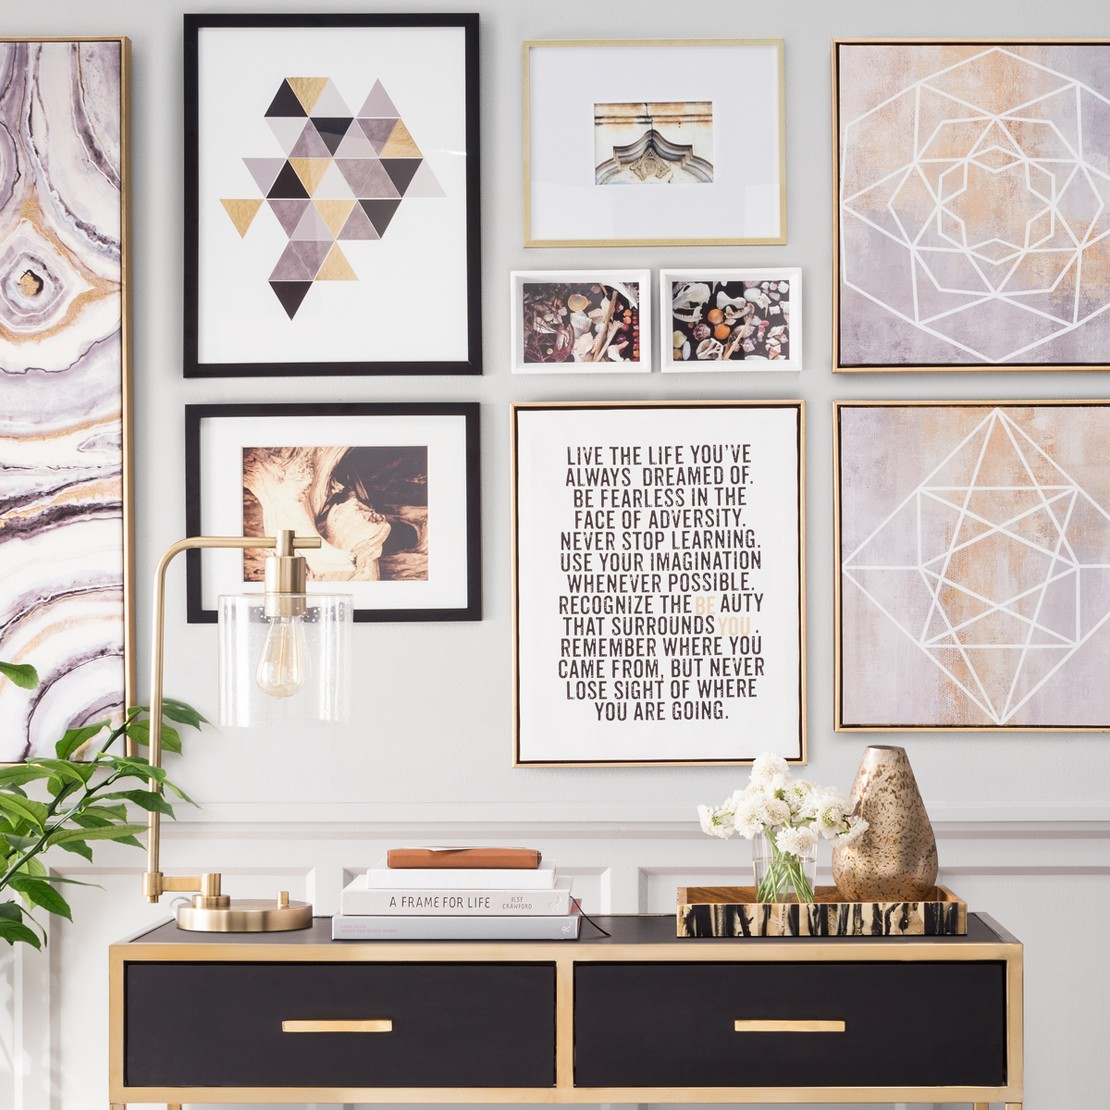 Wall ideas for